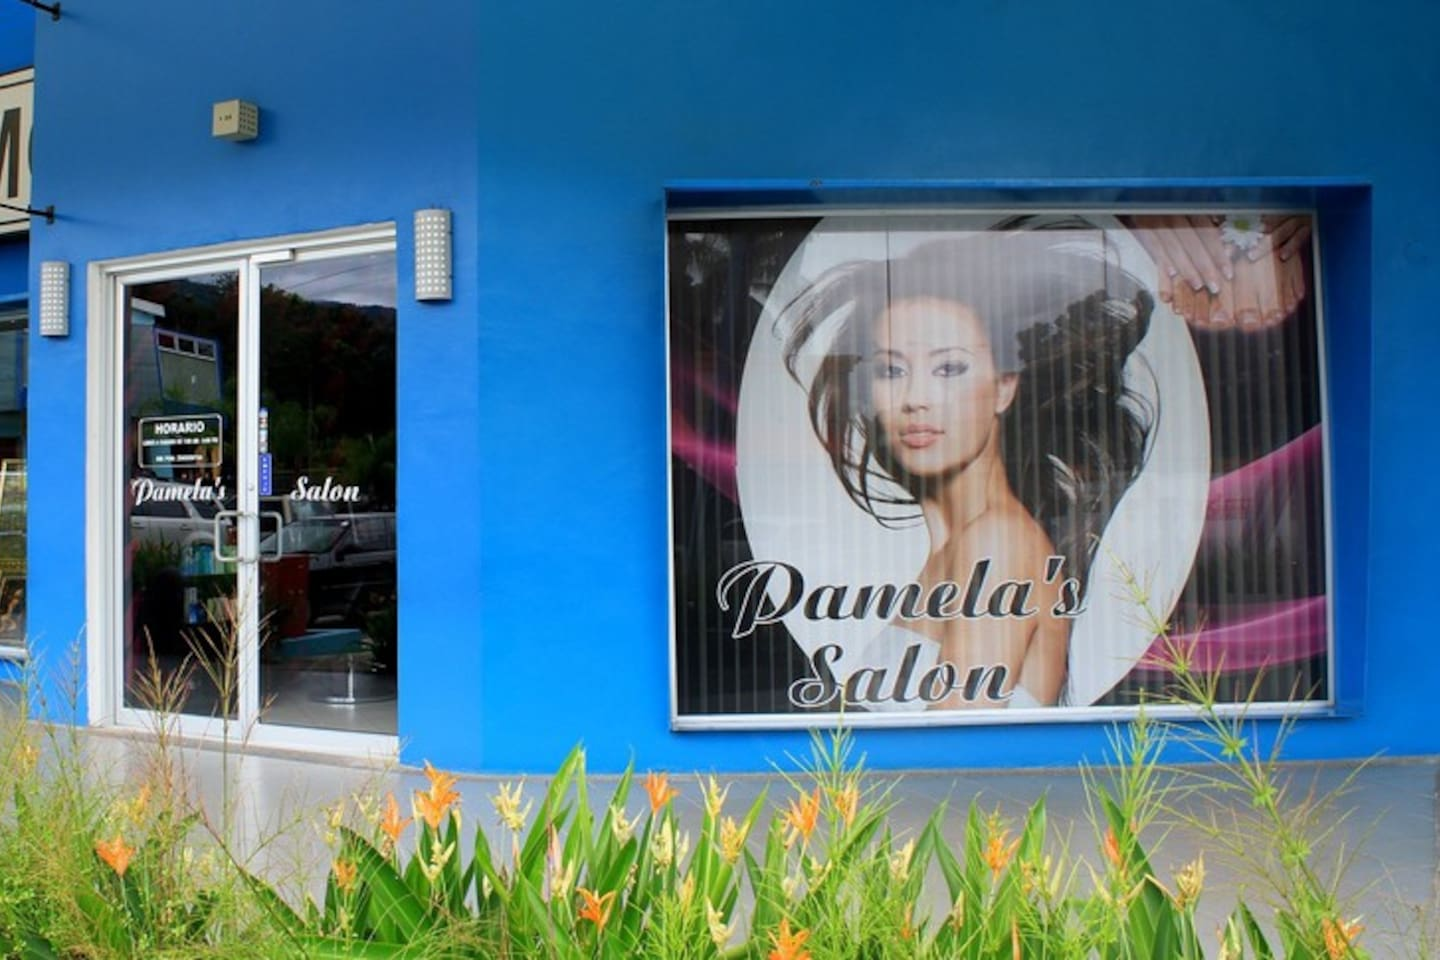 Convenient! A beauty salon just a few steps from your suite. Perfect for last-minute plans. Open late!